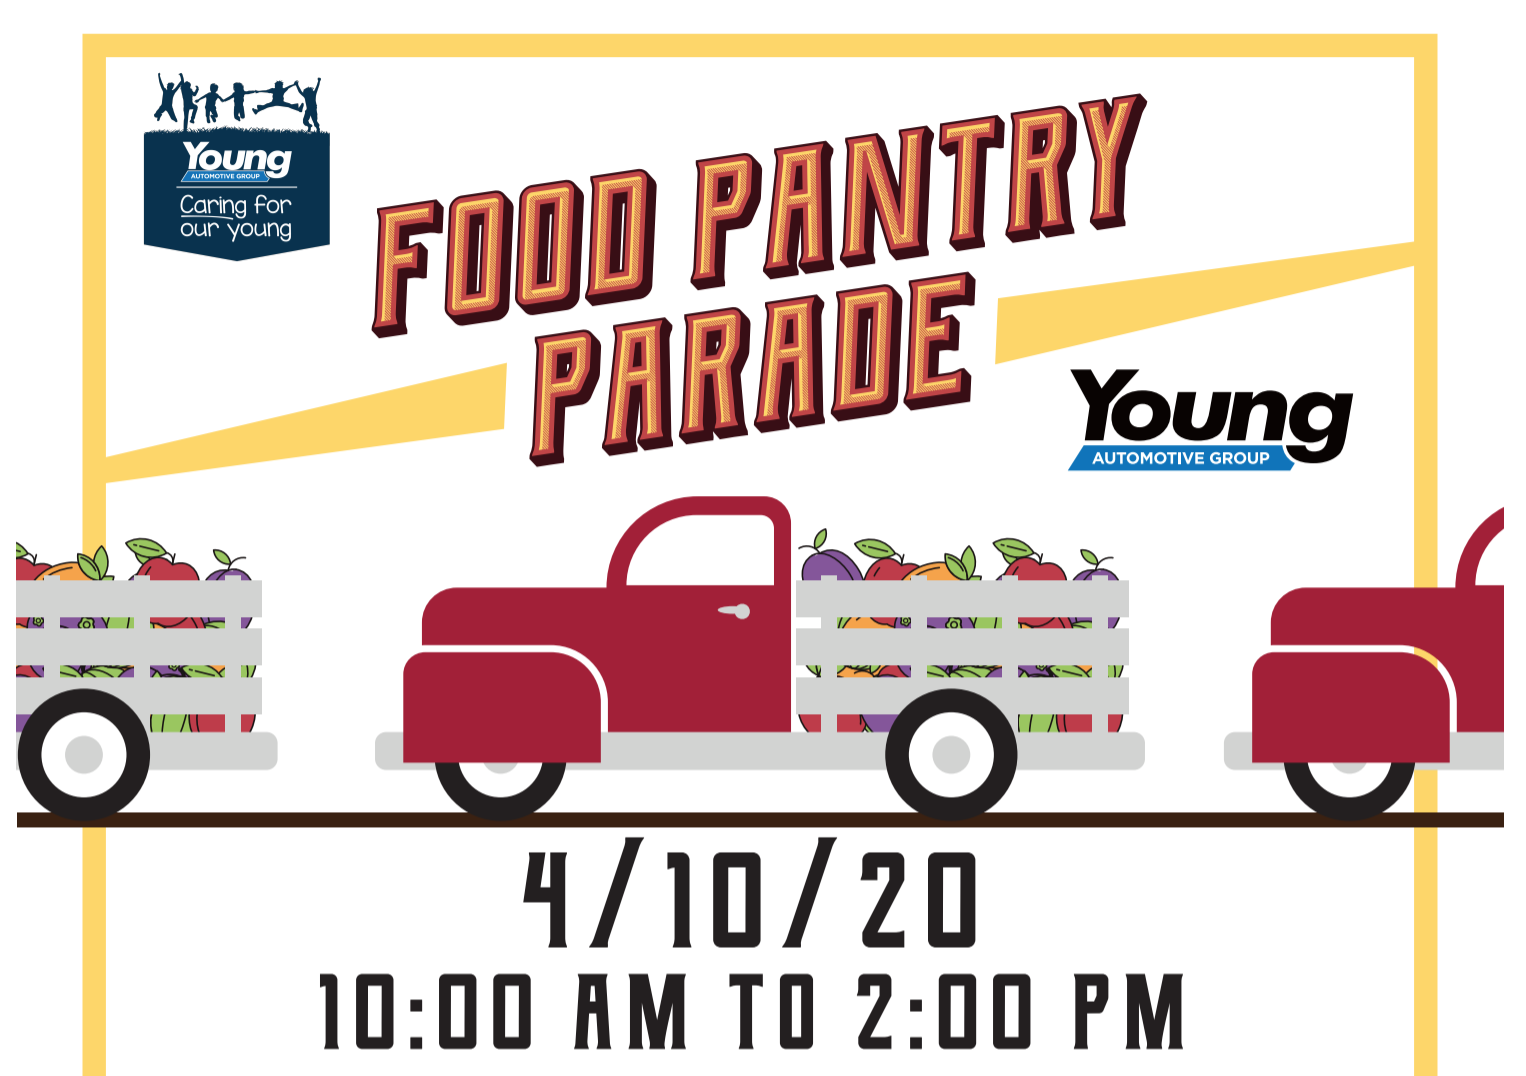 Young Automotive Food Pantry Parade